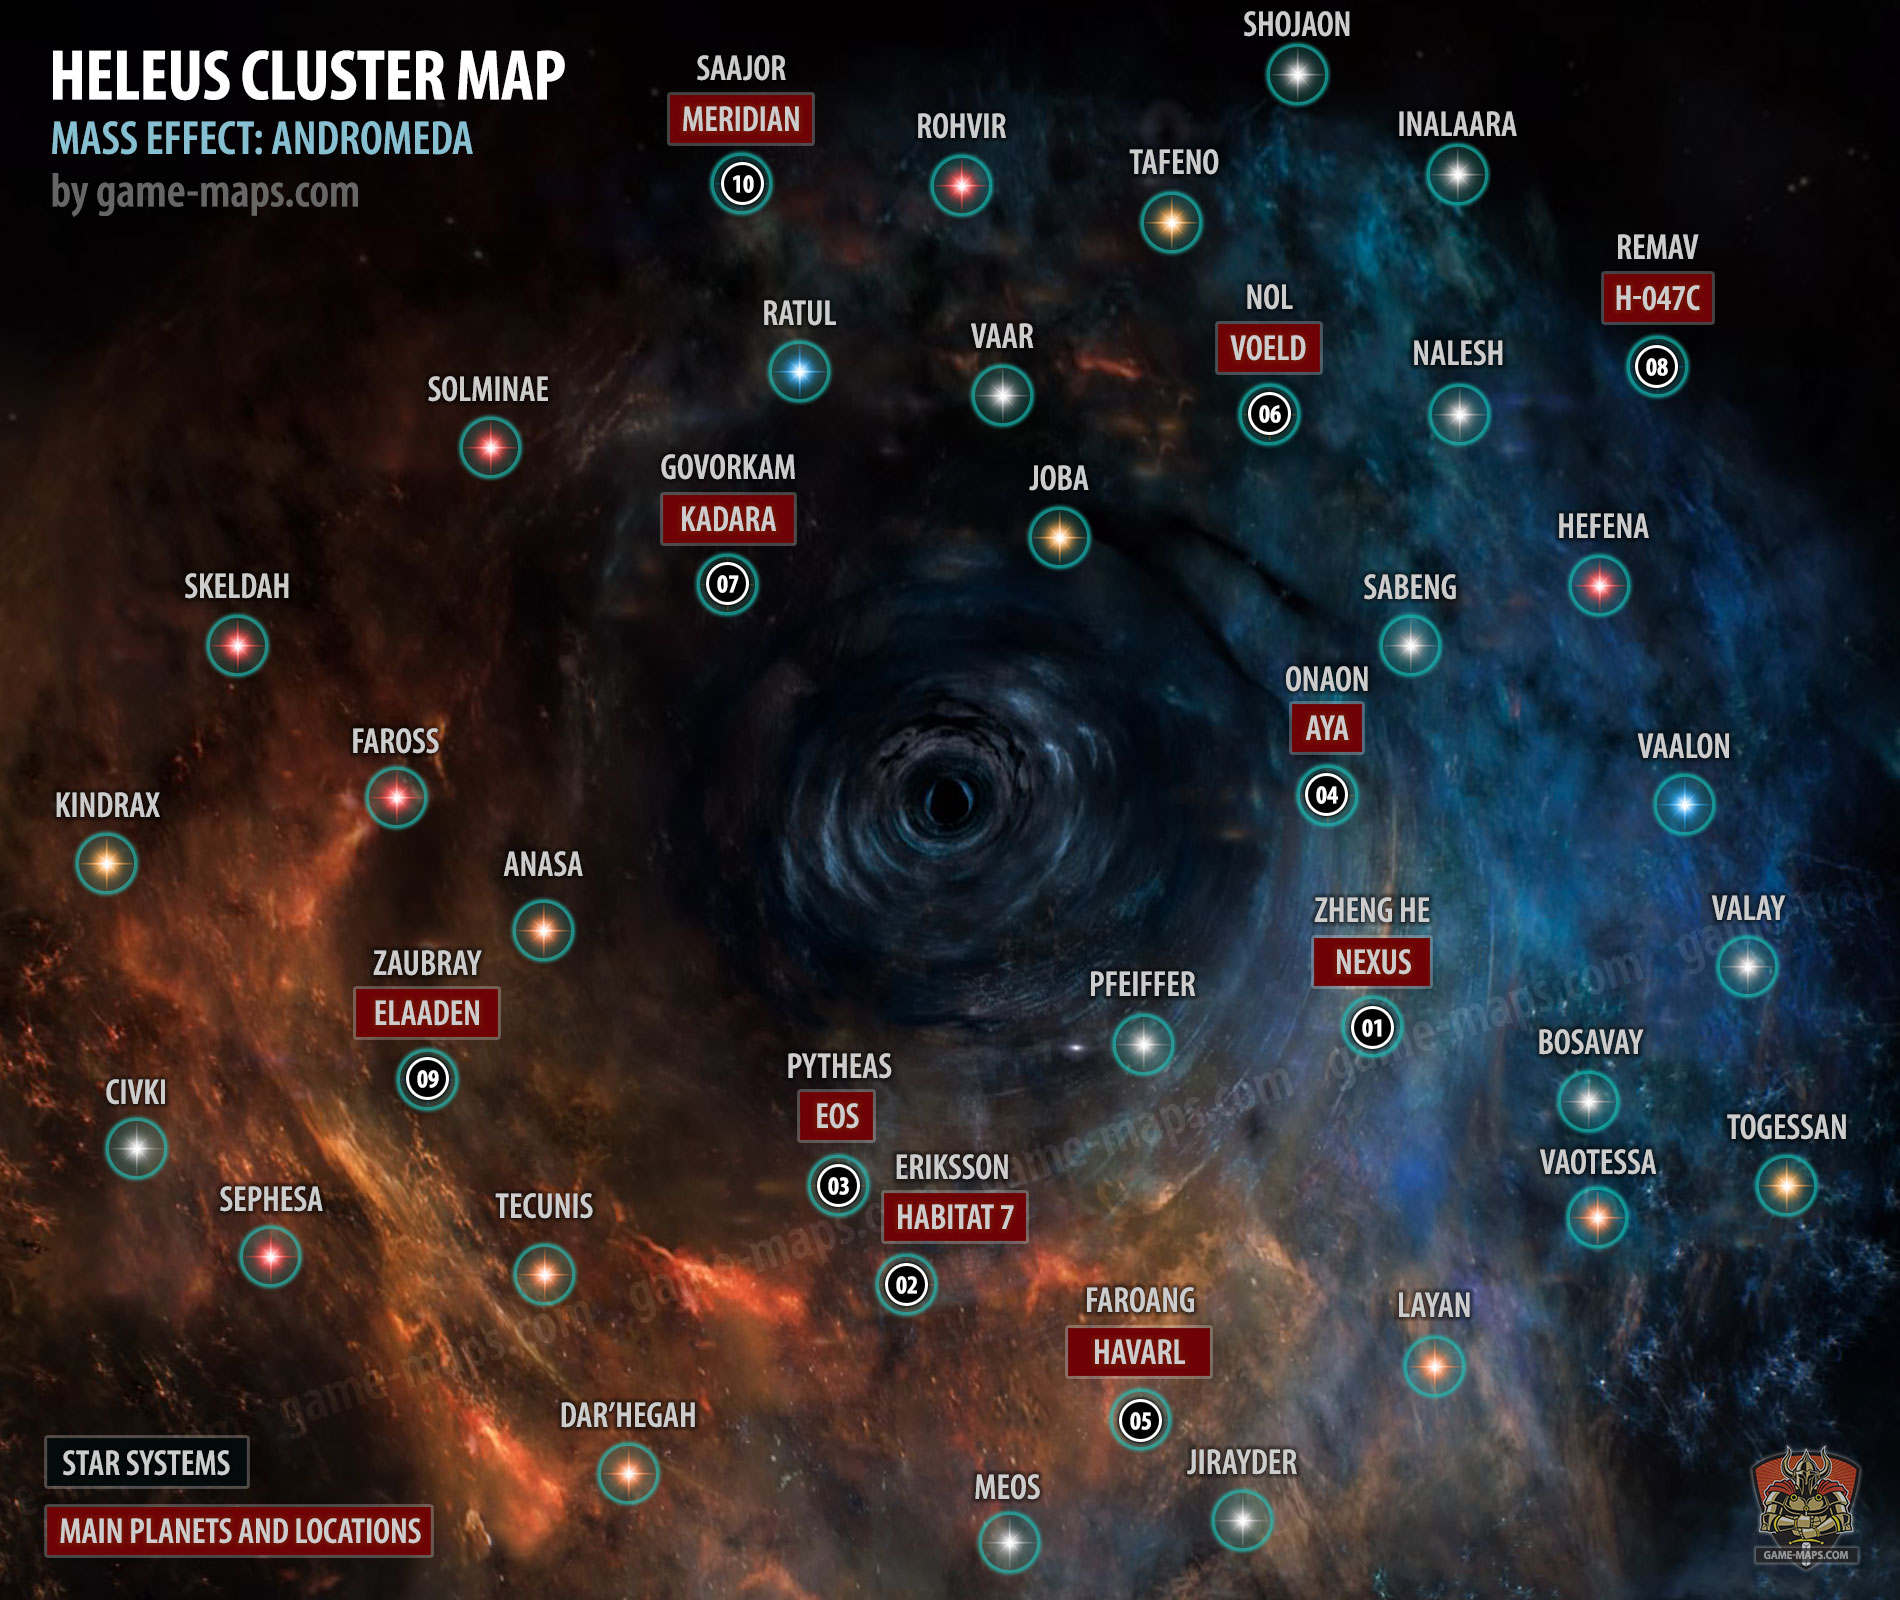 Mass Effectandromeda Heleus Cluster Map Mass Effect Andromeda Game Maps